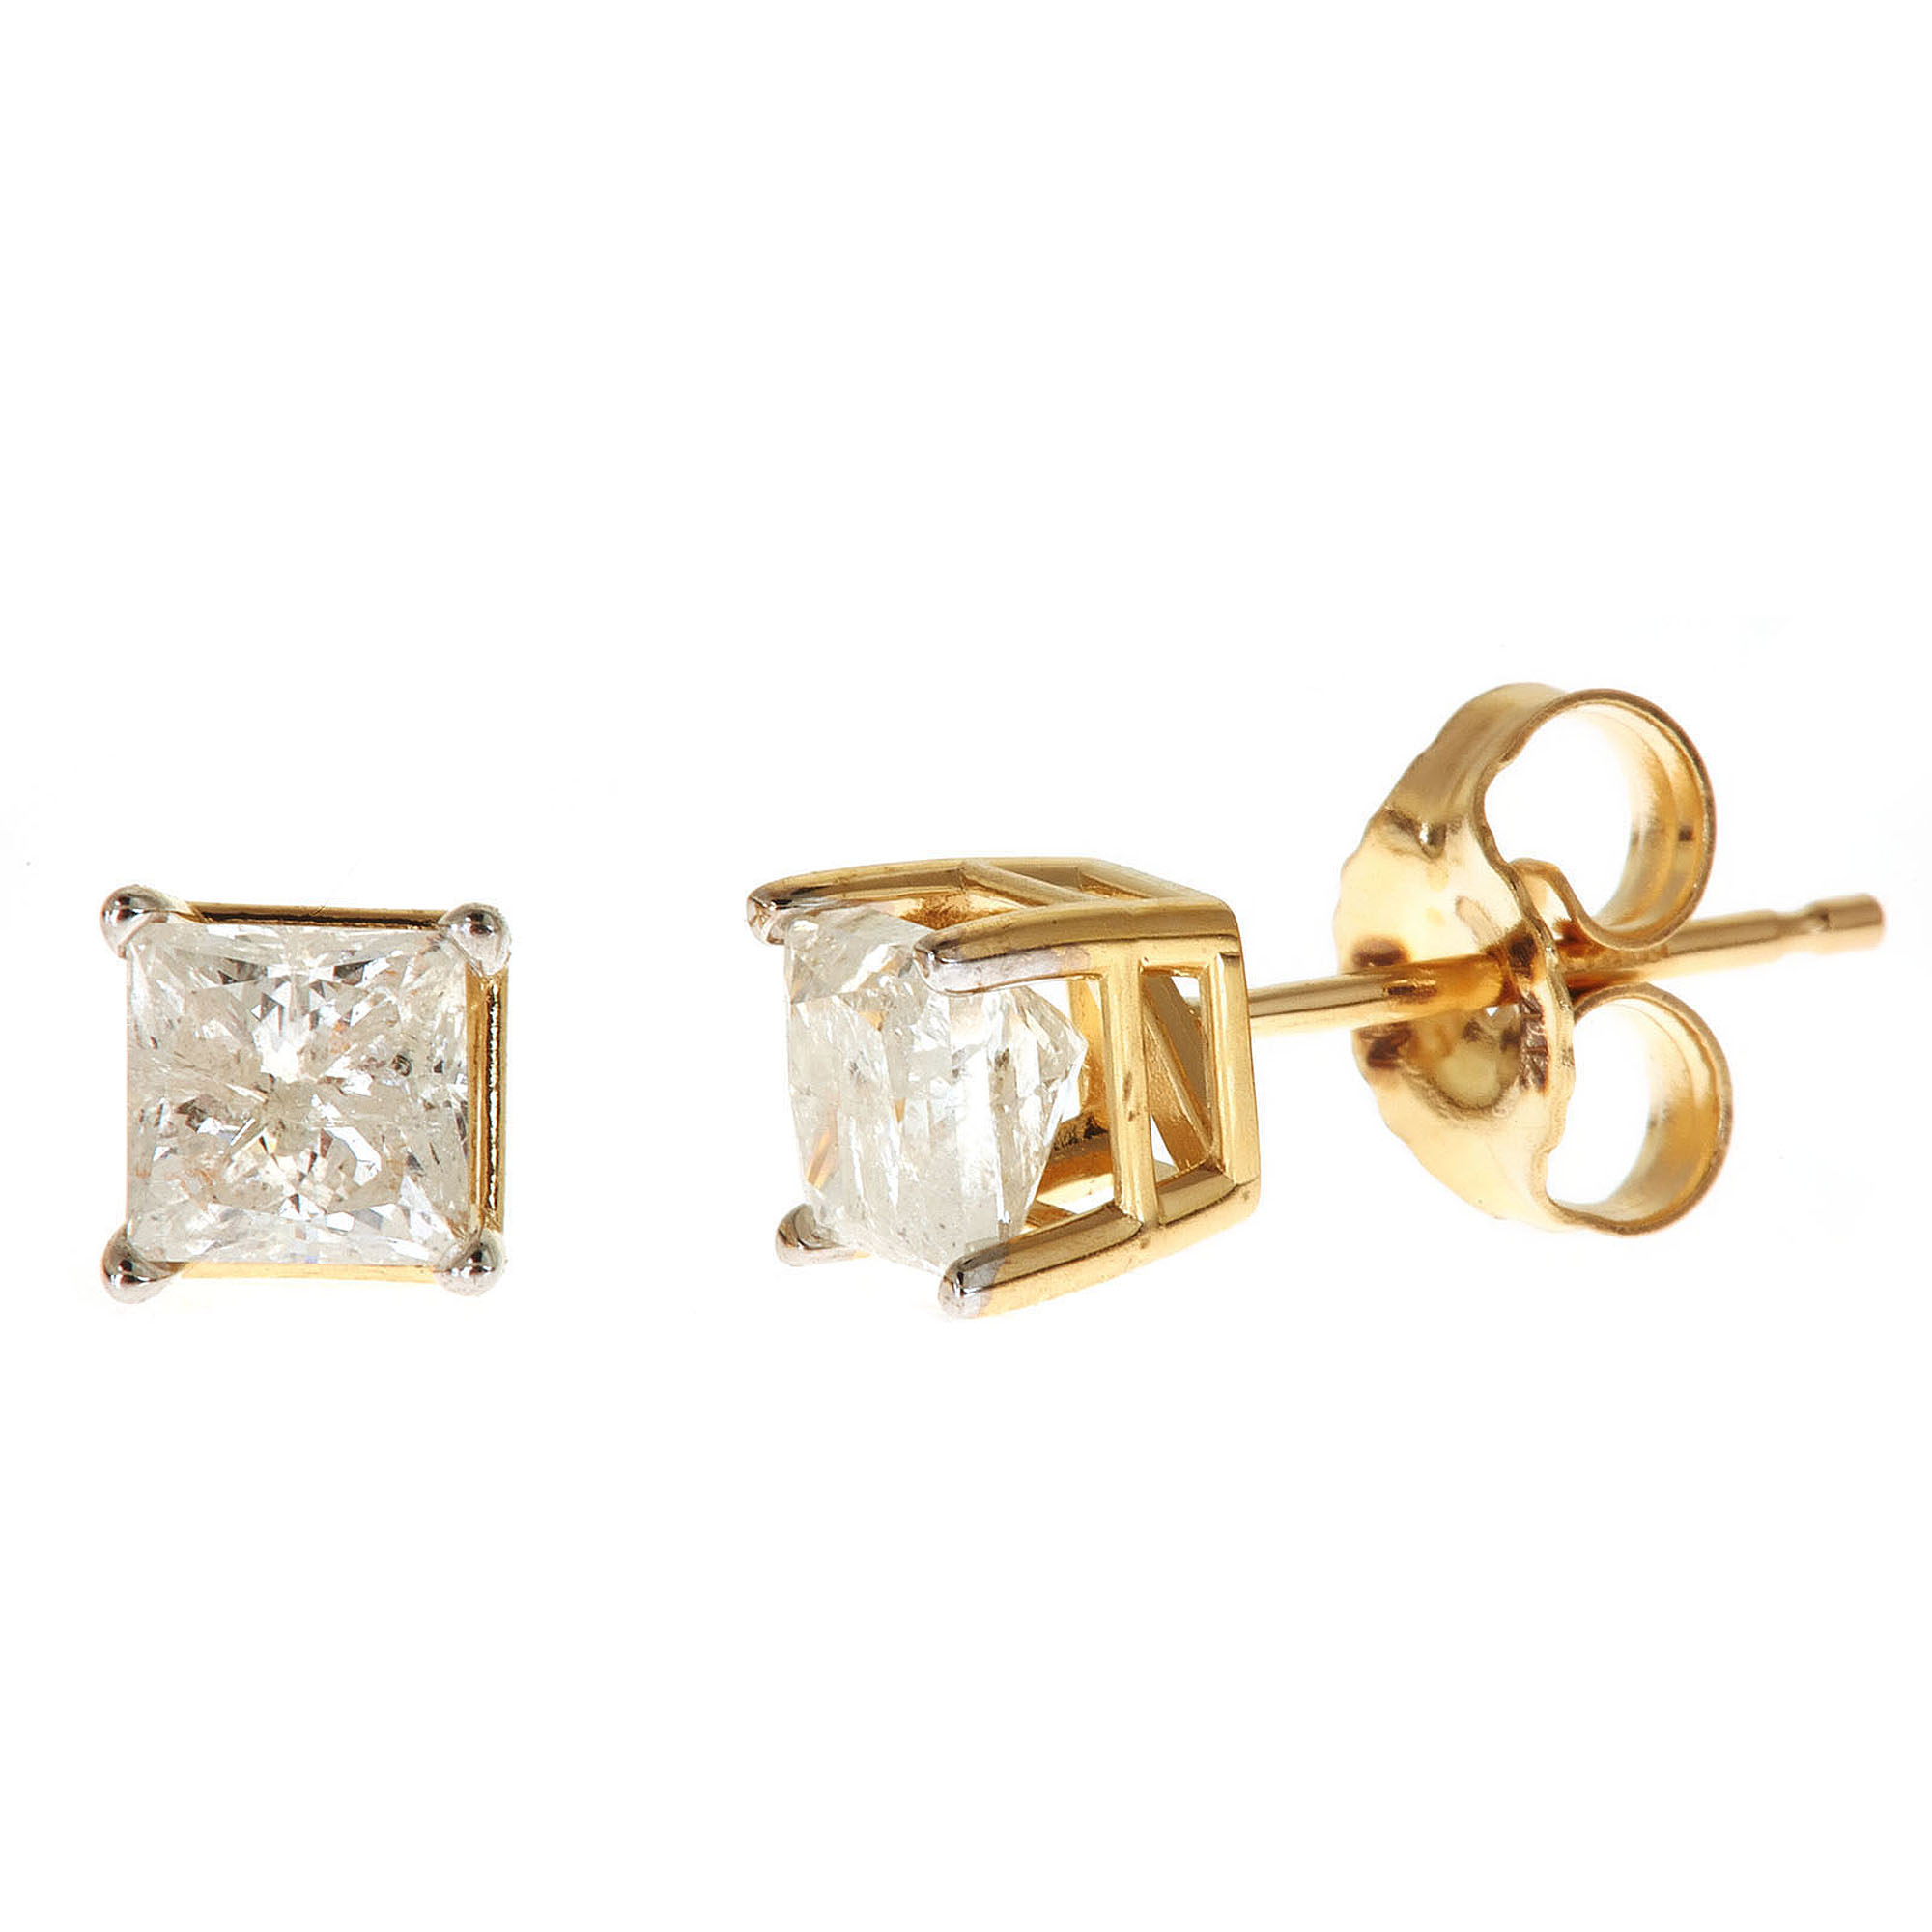 gold overstock jewelry karat diamond earrings today free j watches in product white shipping carat leverback k